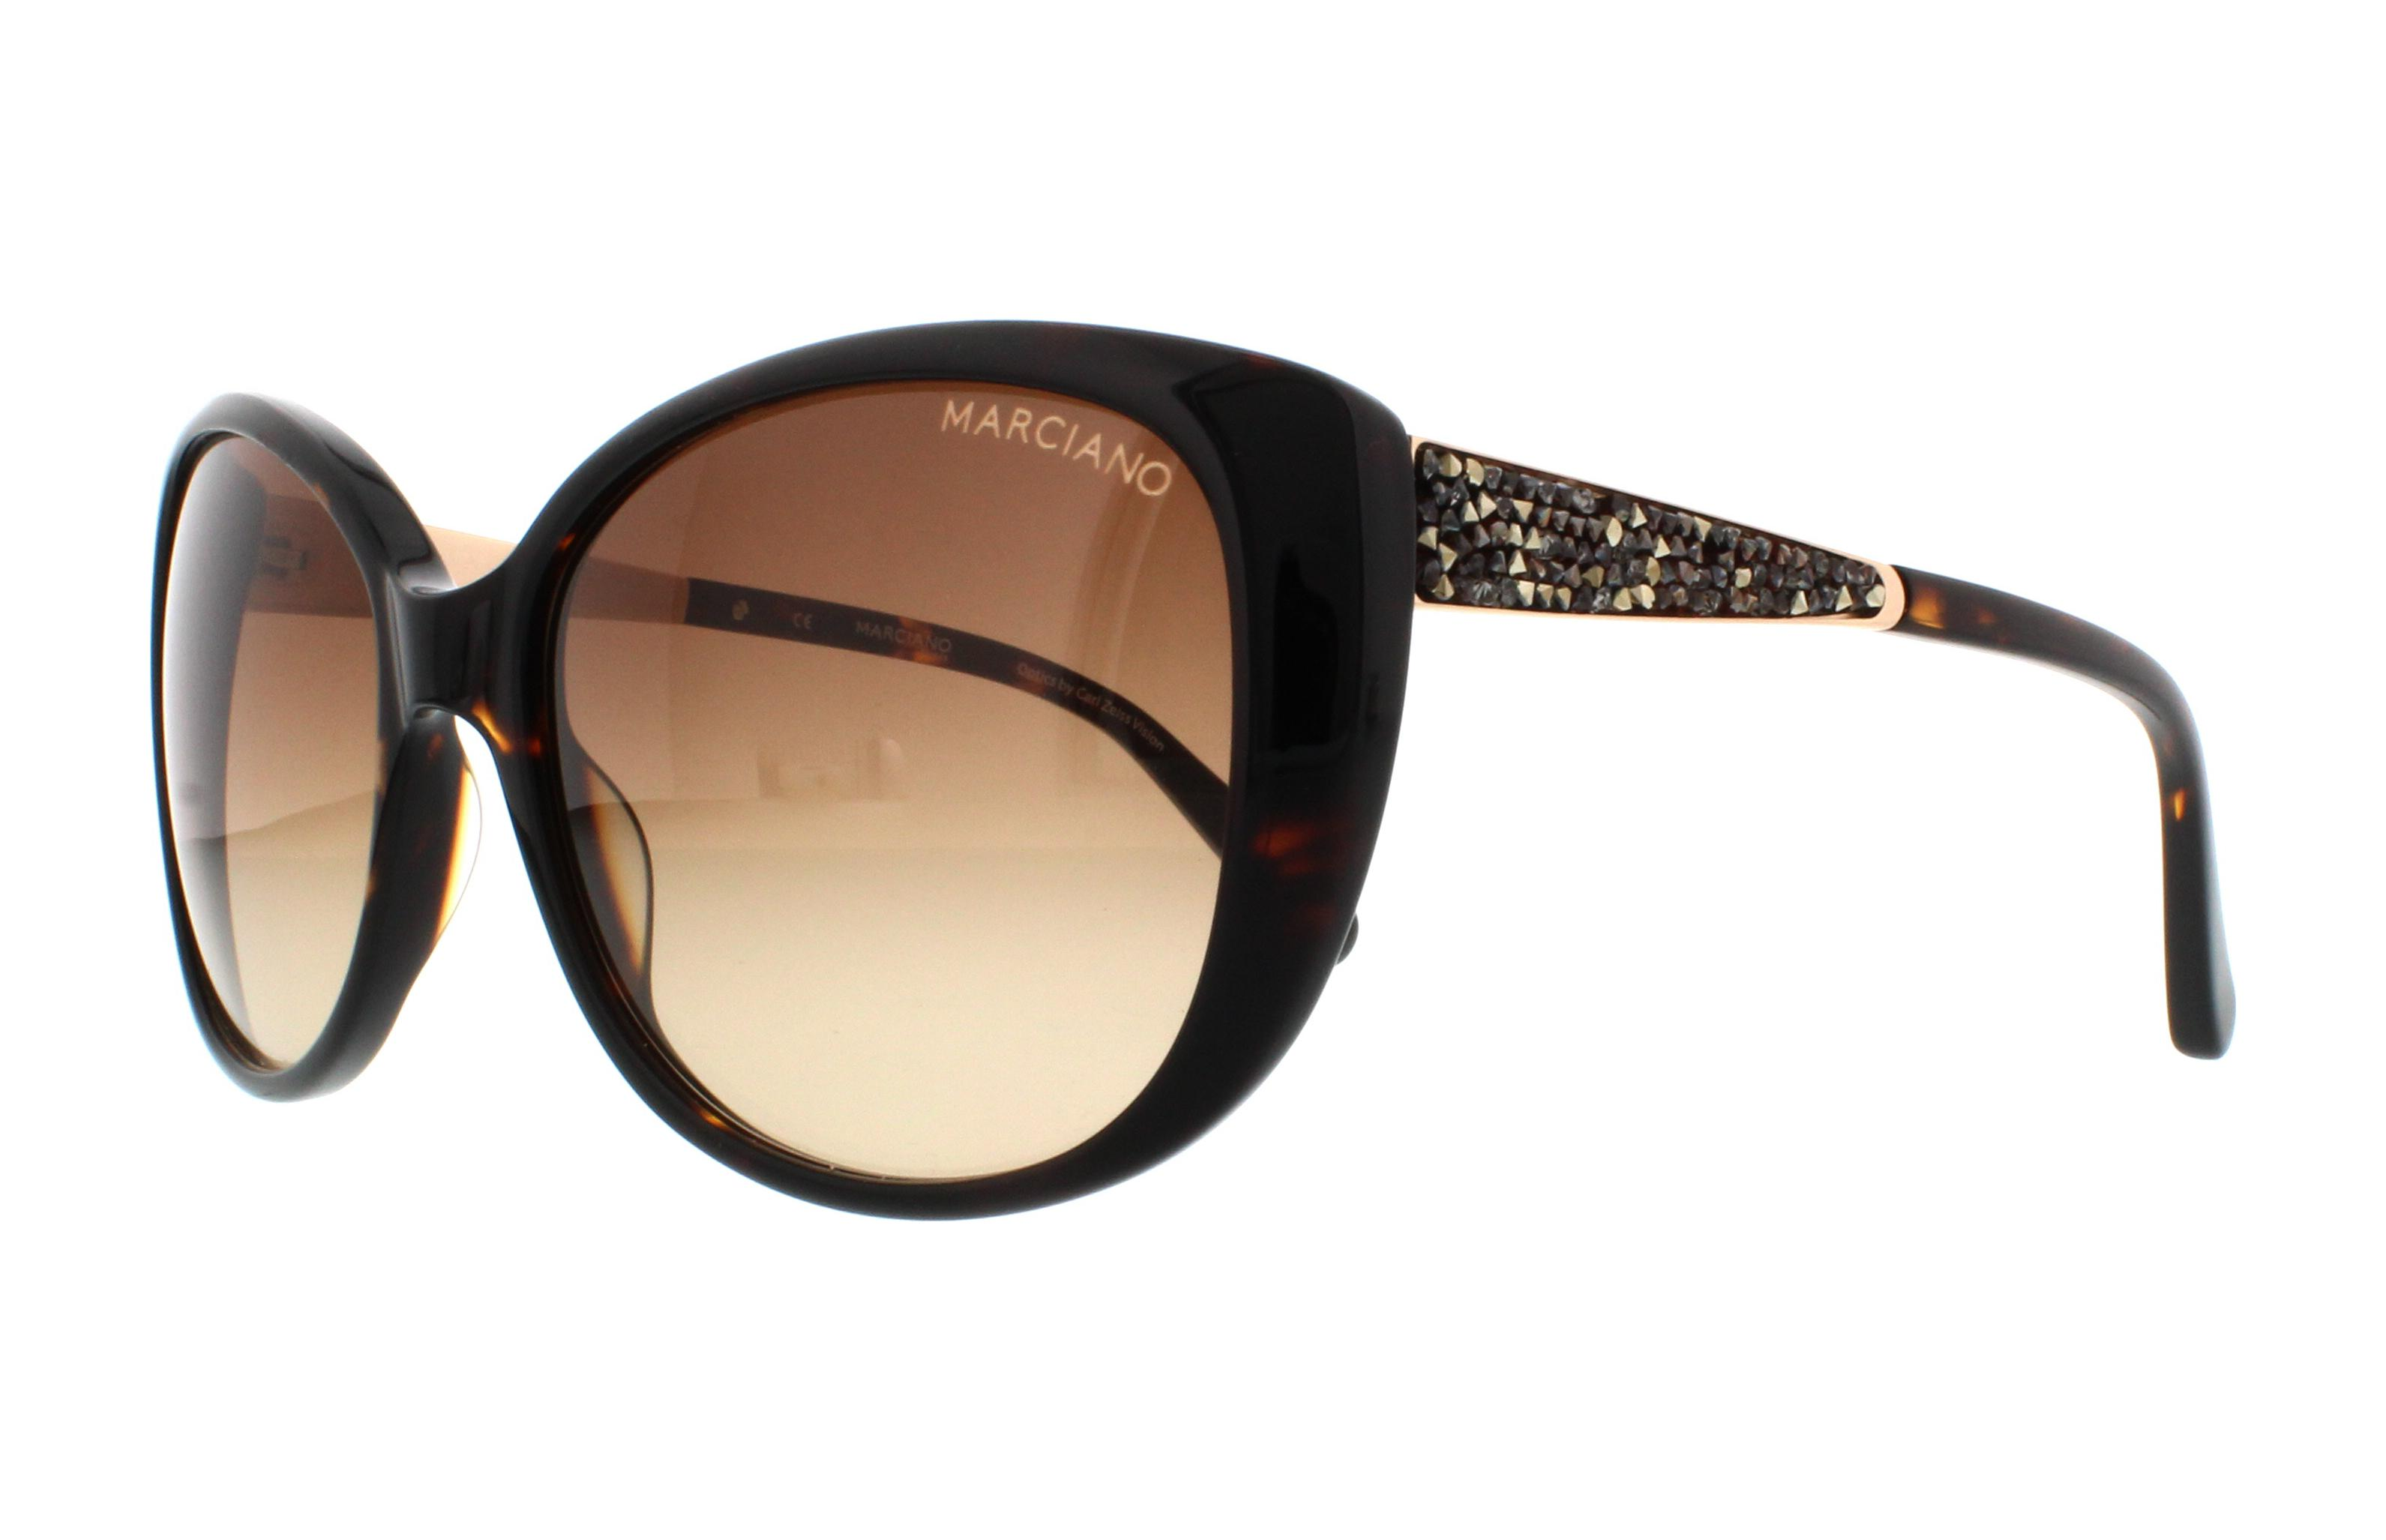 082183fef8f Designer Frames Outlet. Guess By Marciano GM 722